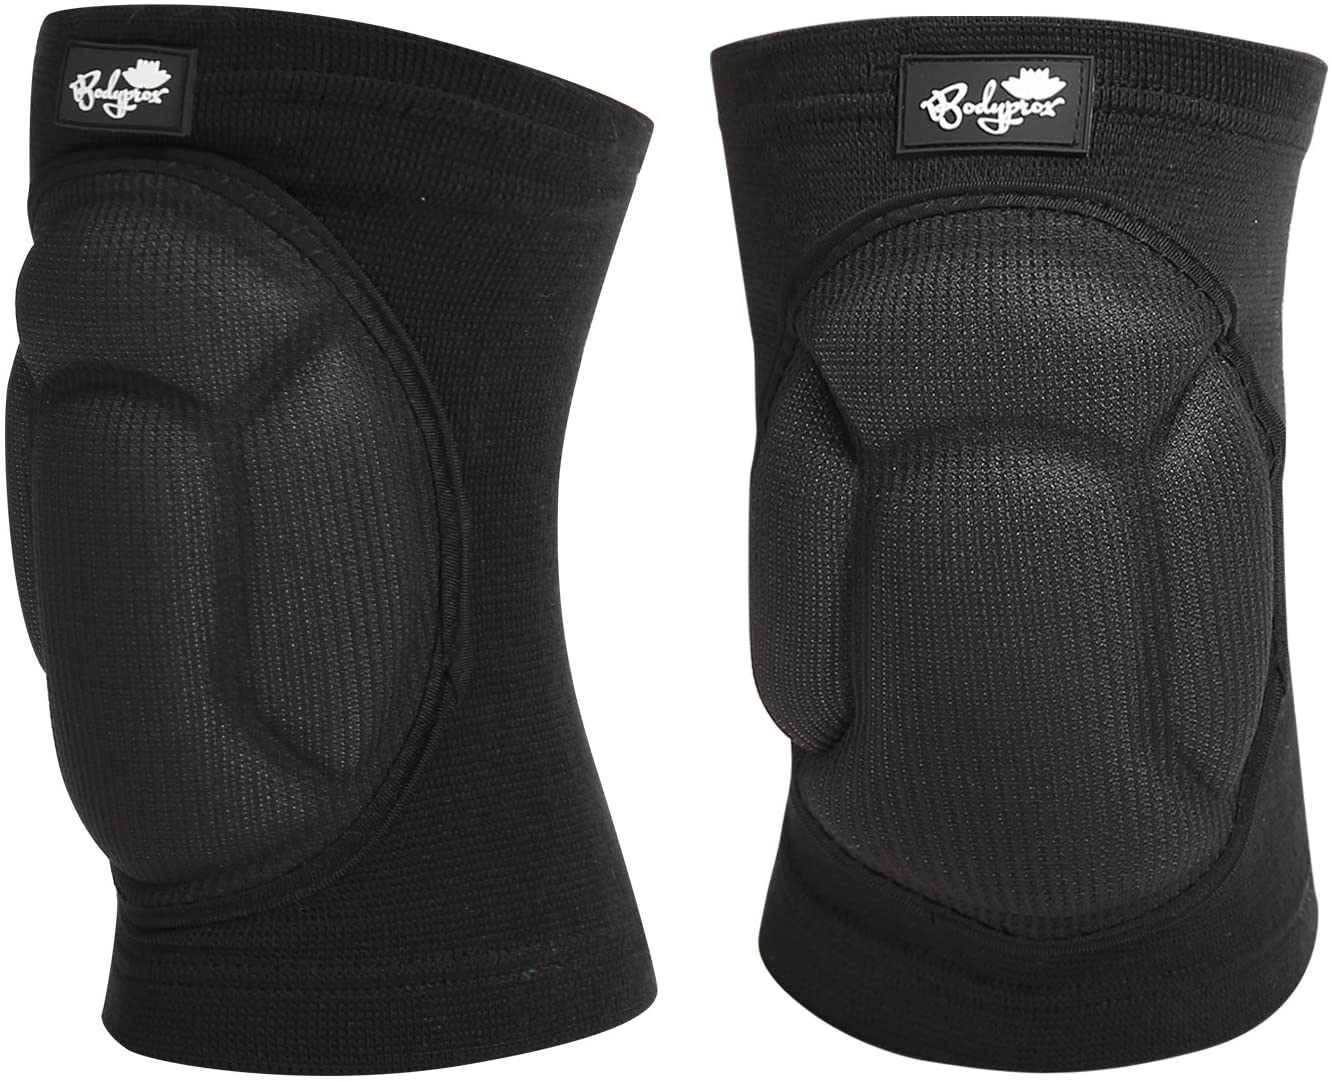 Best Paintball Knee Pads Reviews and Buying Guide 2021